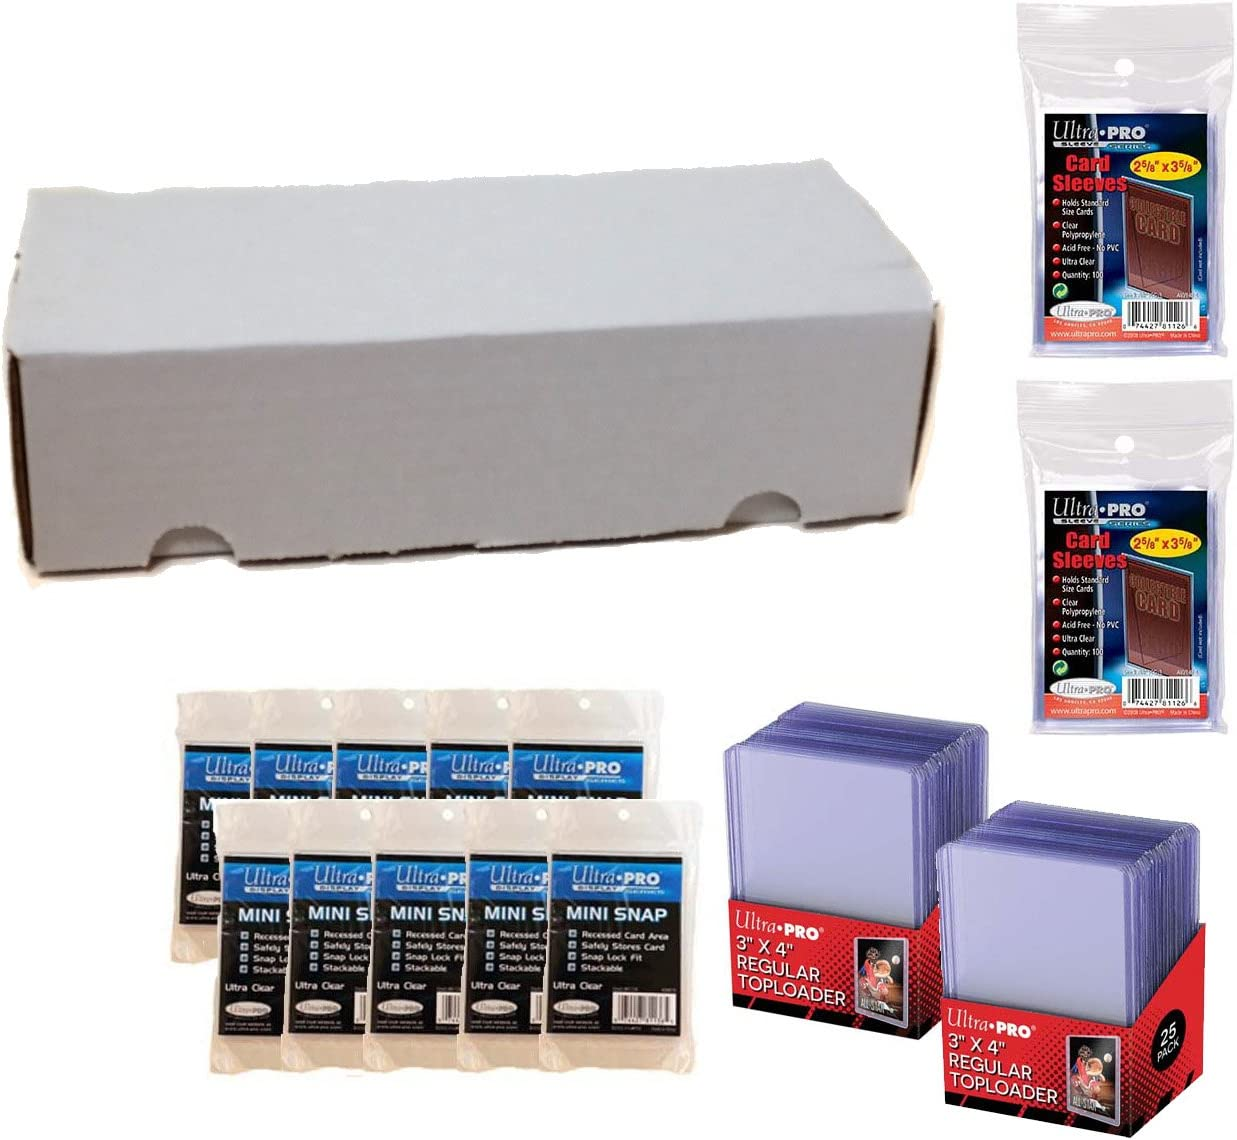 Mini Snap Holders /& 550 Count Storage Box Top Loaders Ultra Pro Card Collector Supplies Starter Kit Large Bundle Sleeves